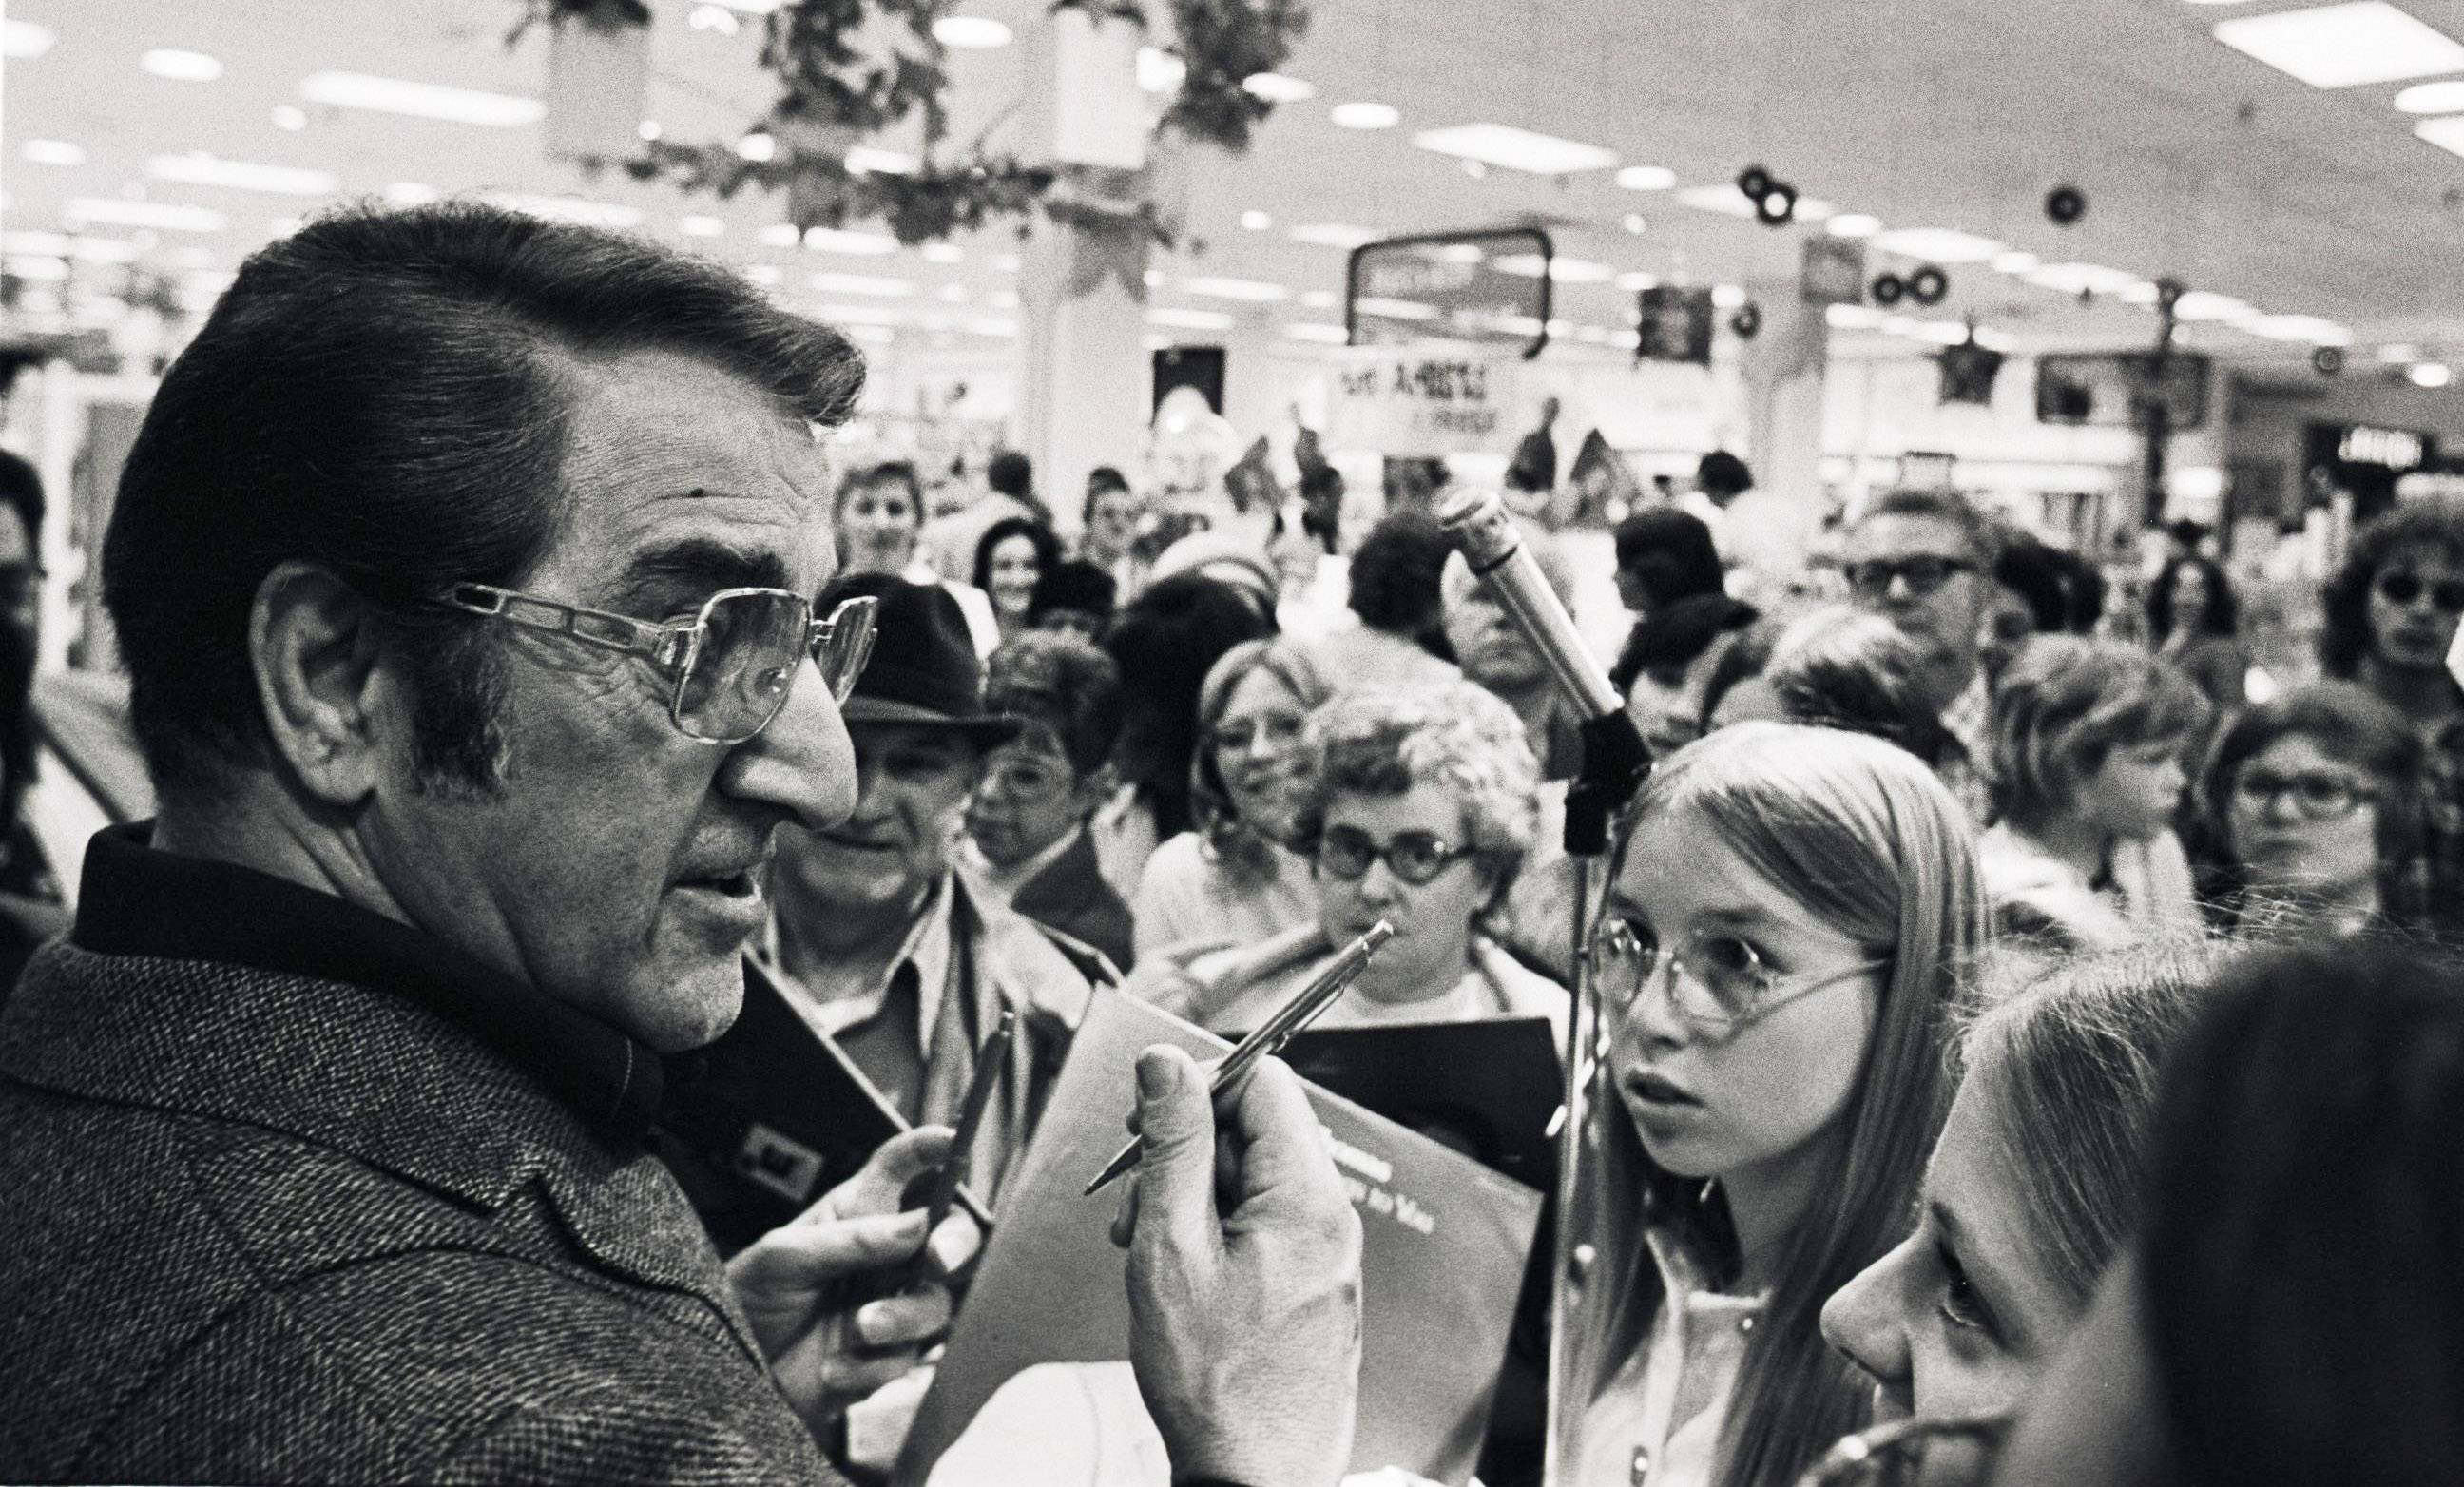 Actor, singer and producer Danny Thomas signs autographs for fans during a visit to Woodfield Mall in Schaumburg.